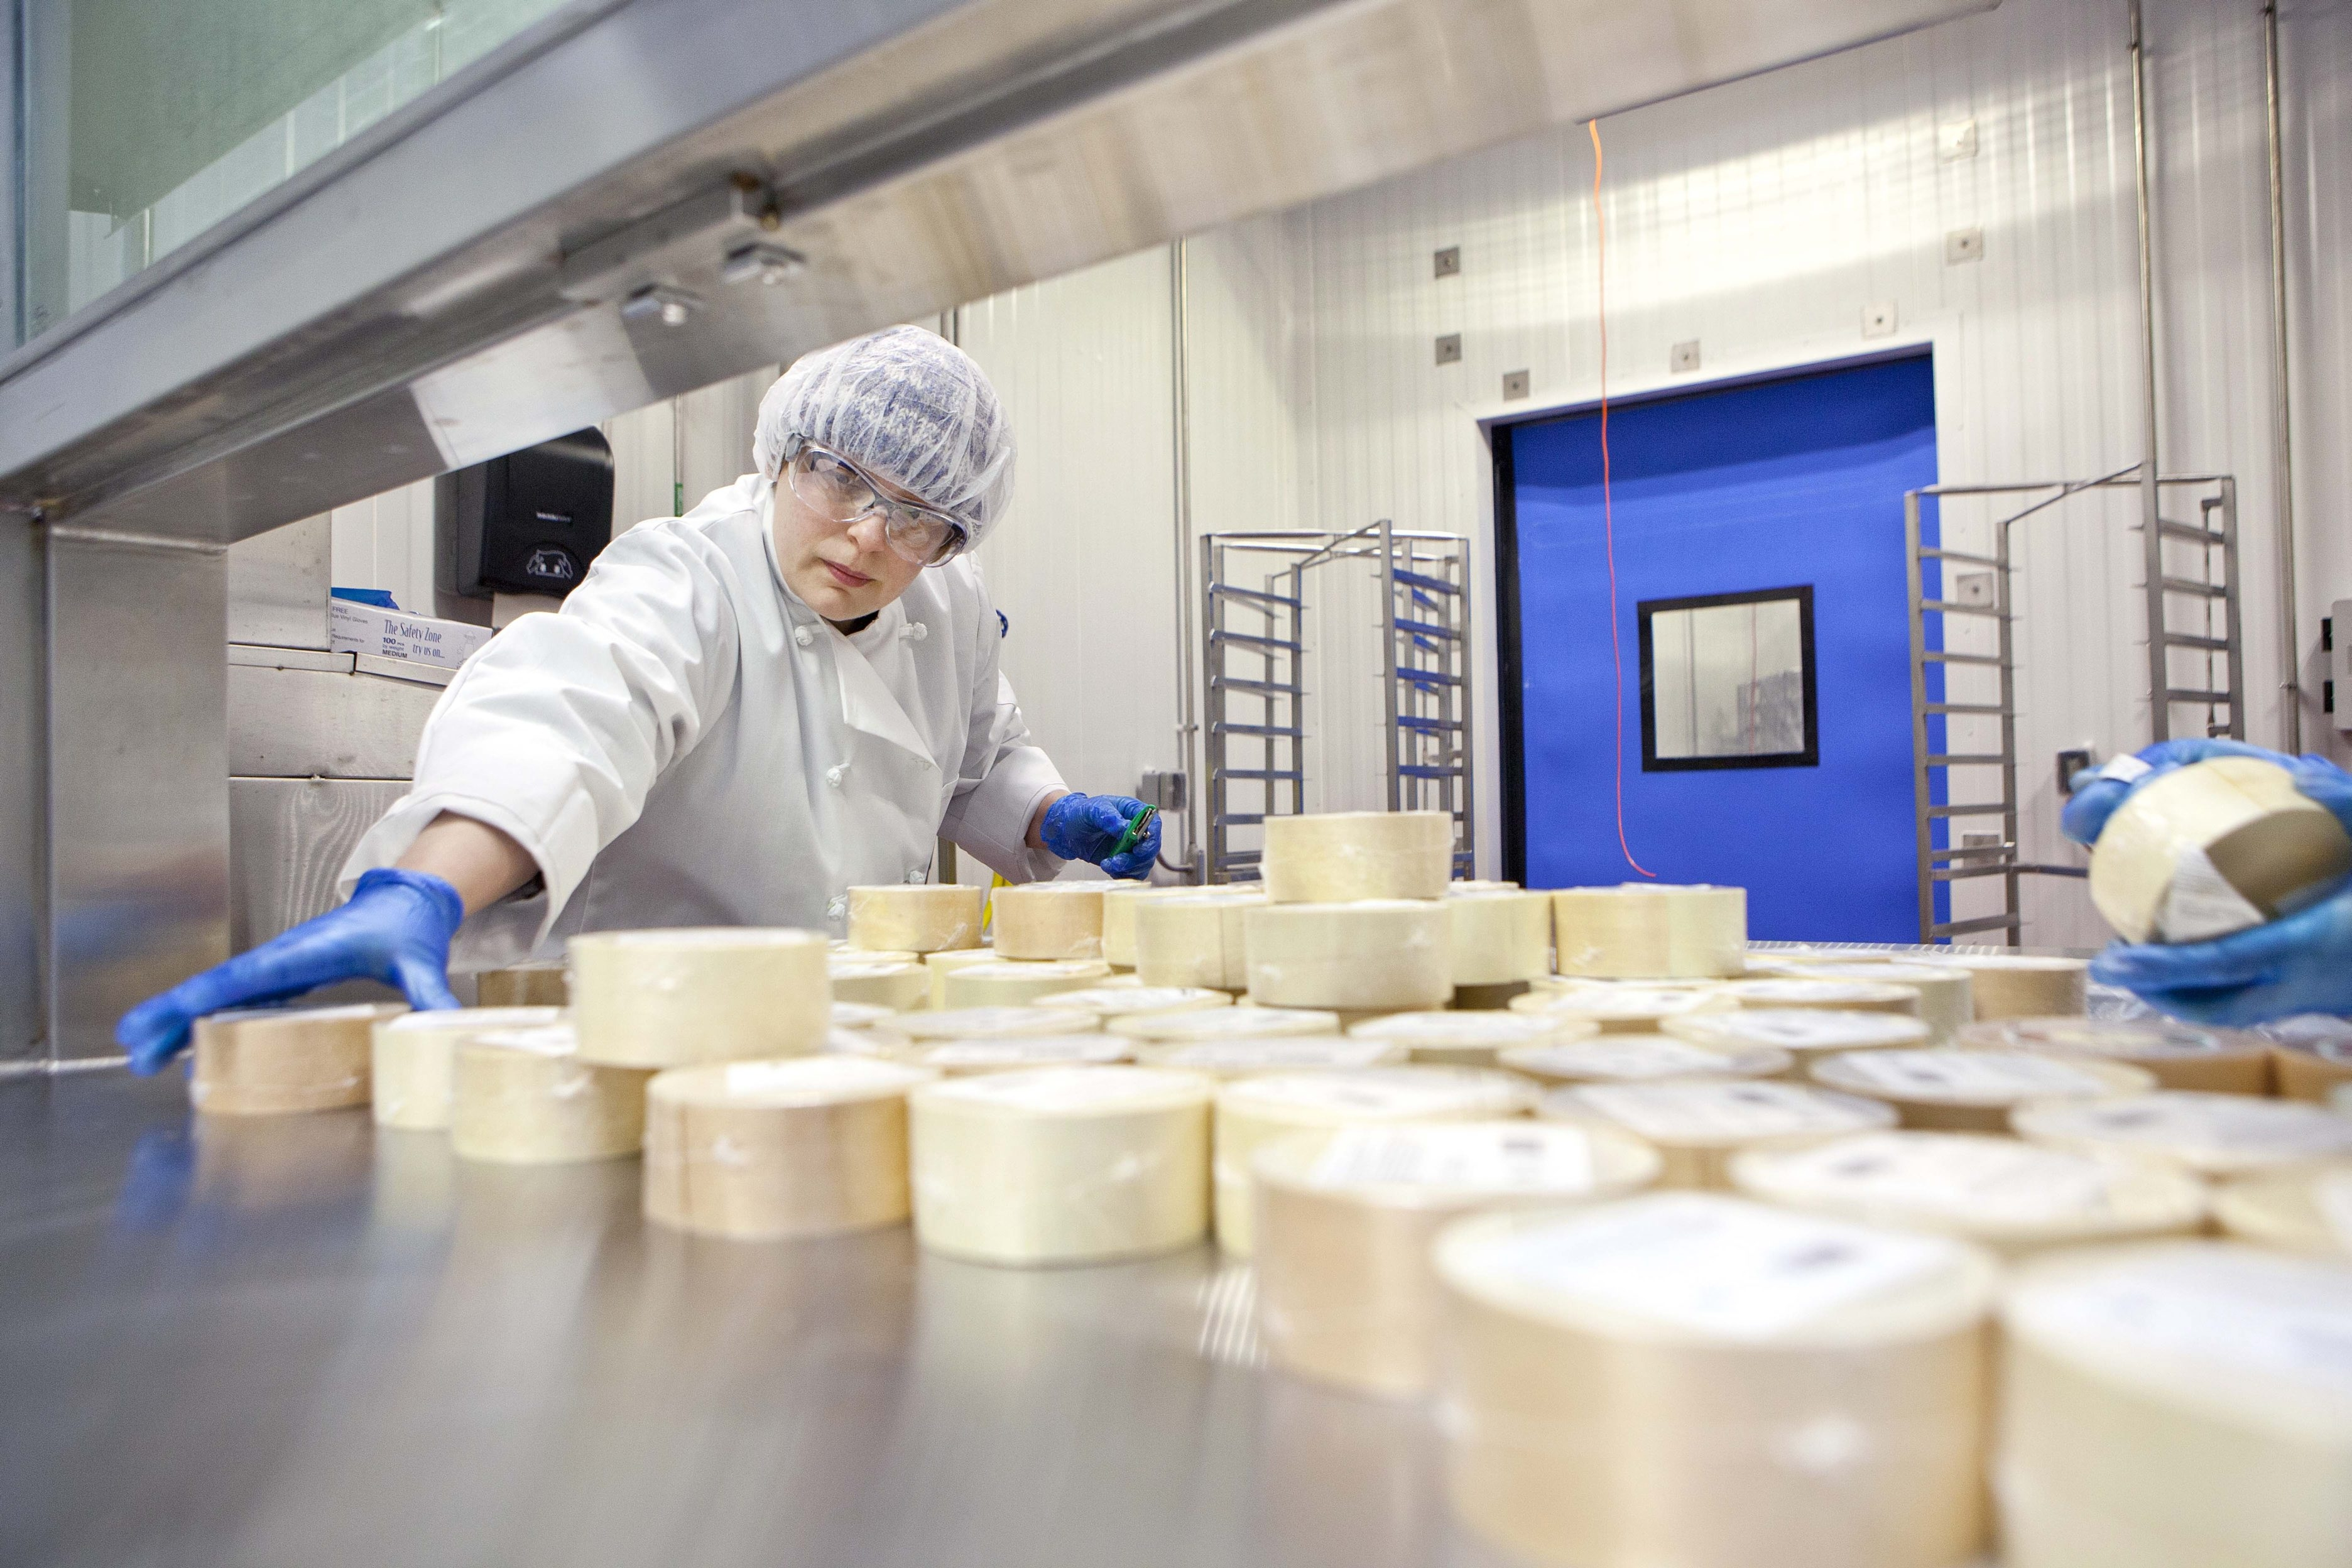 A cheese worker prepares to load new cheese into the cheese cave.